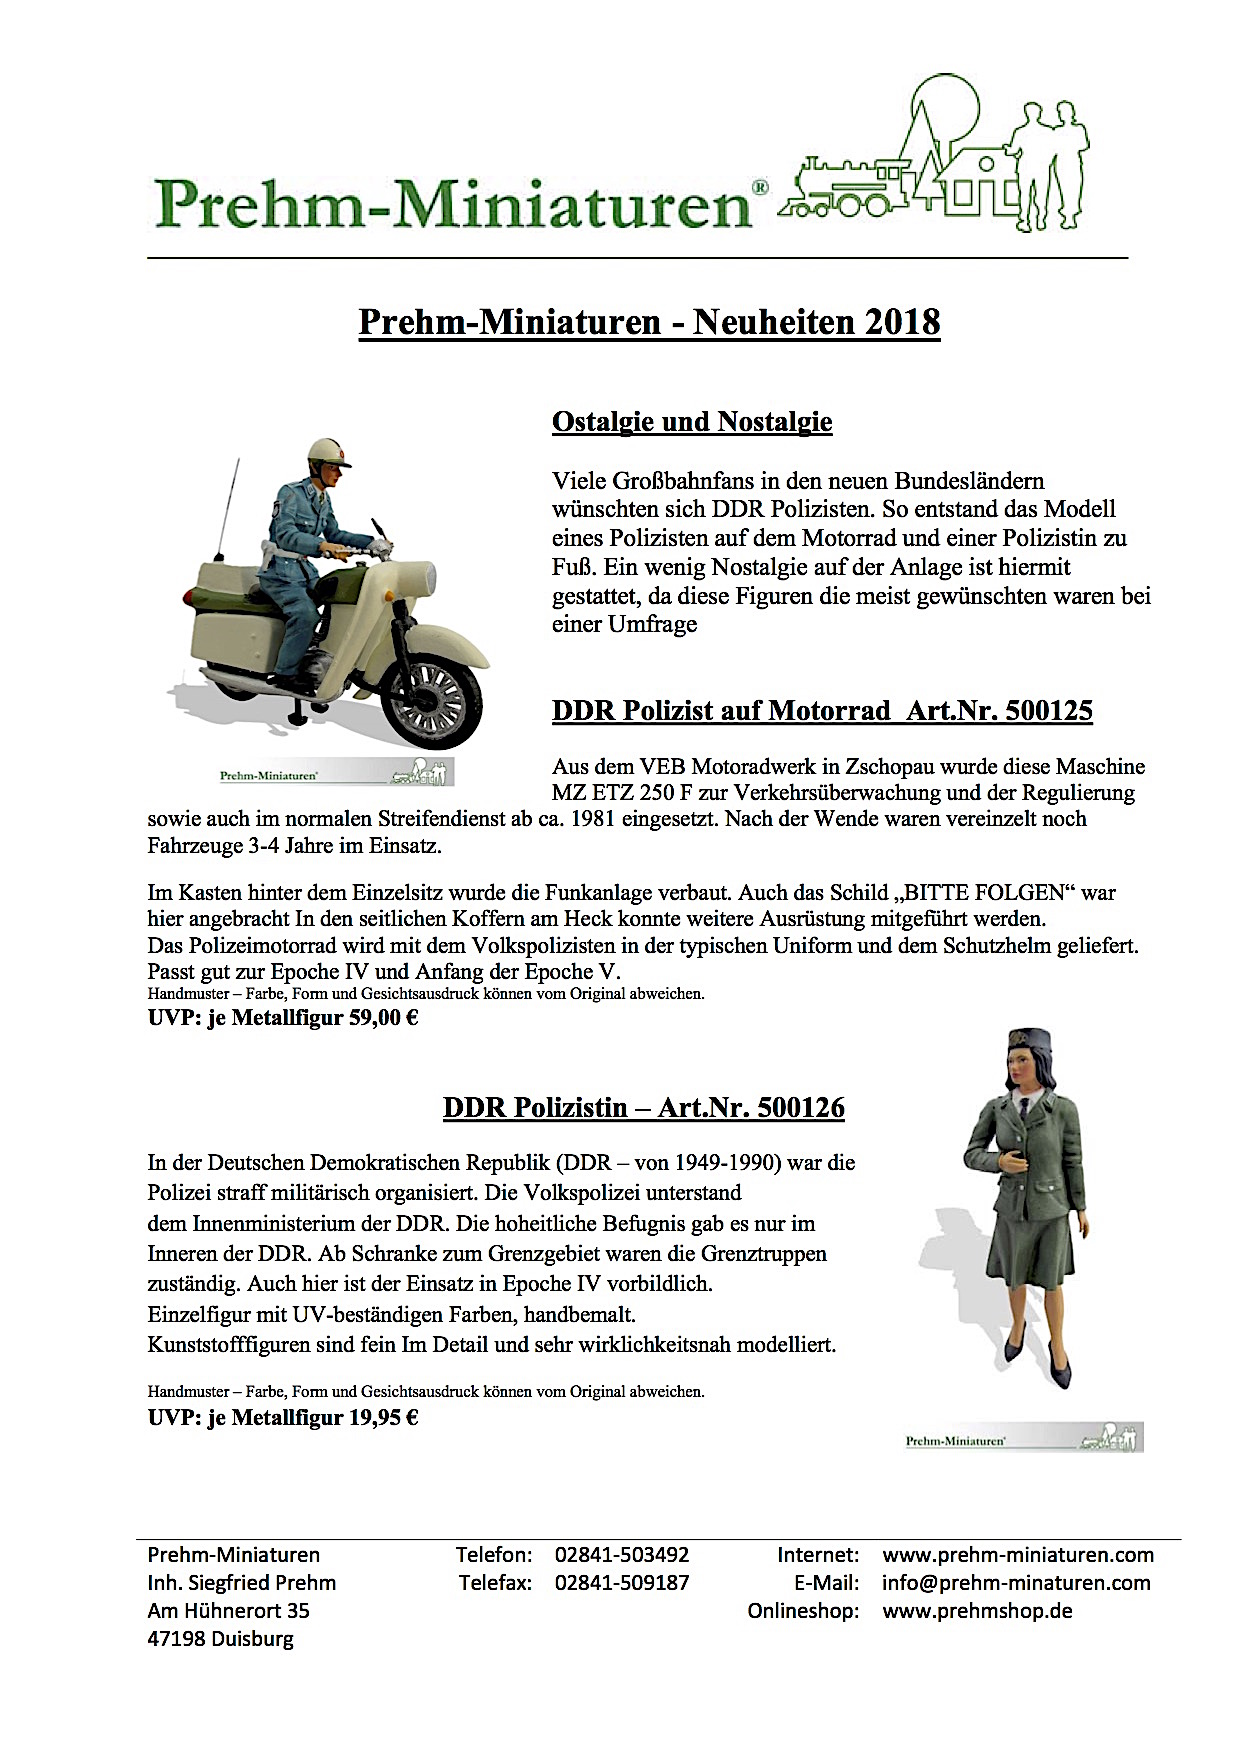 Prehm Miniaturen Neuheiten (New Items) 2018